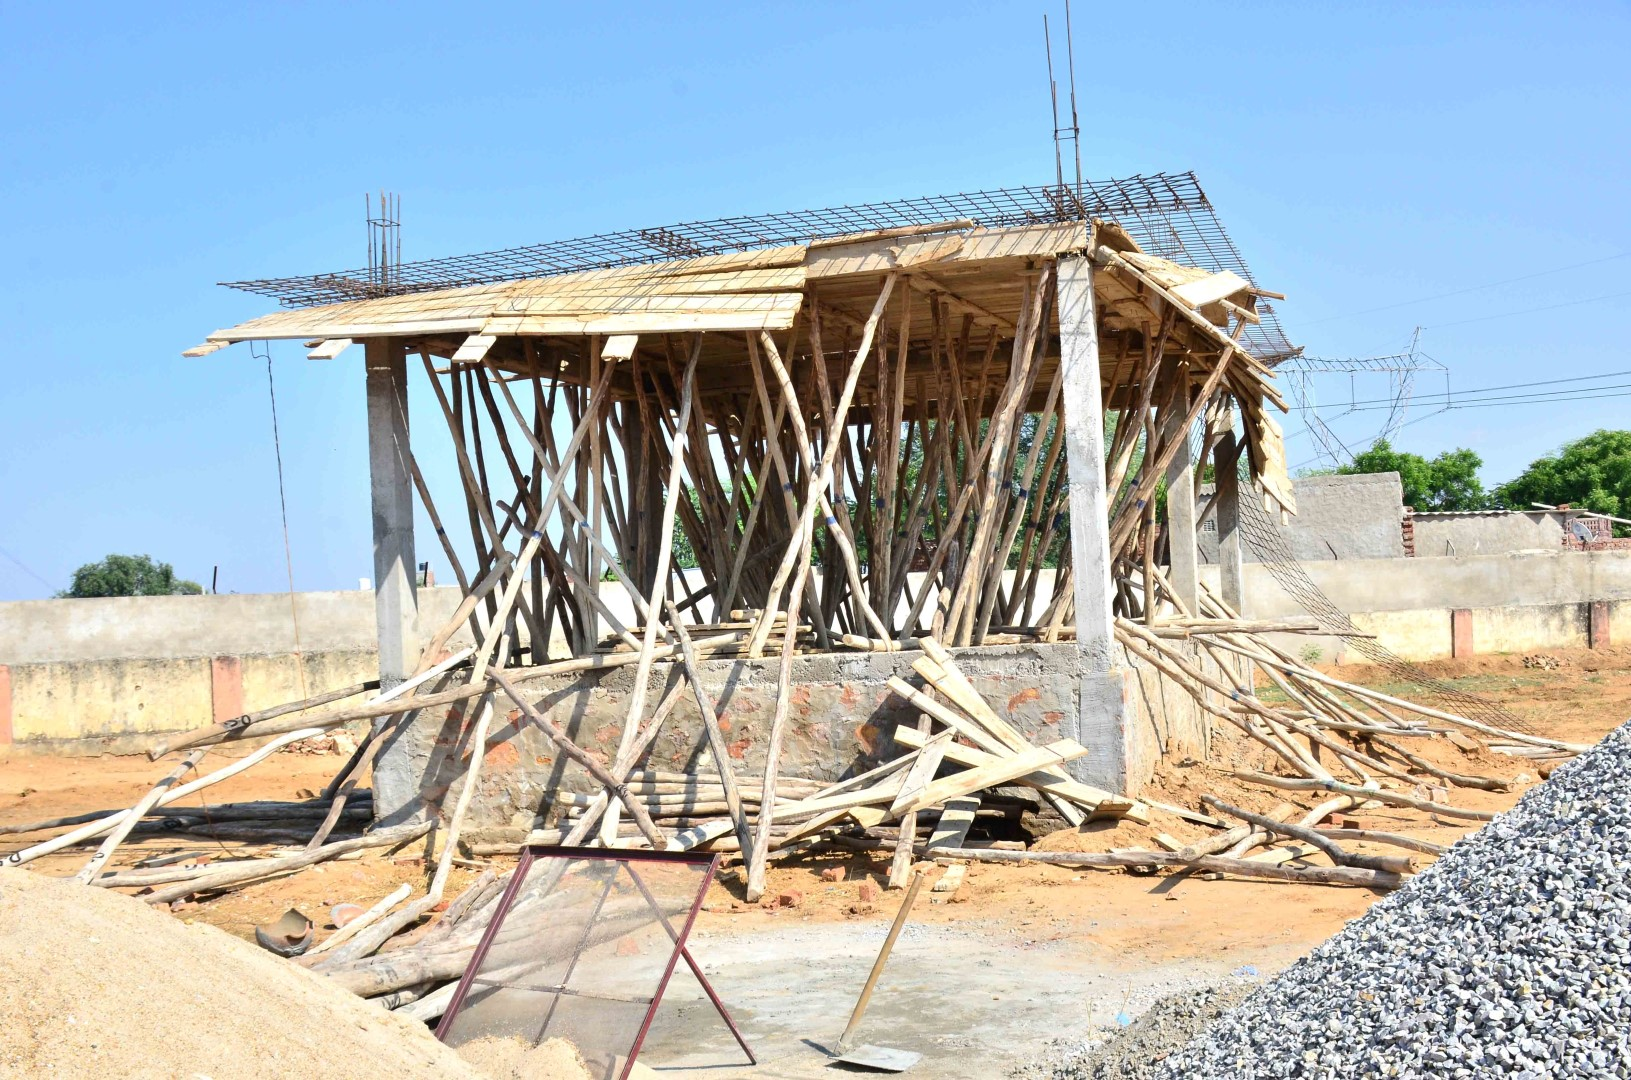 The under-construction large prayer hall that was damaged in the incident. Credit: Special Arrangement